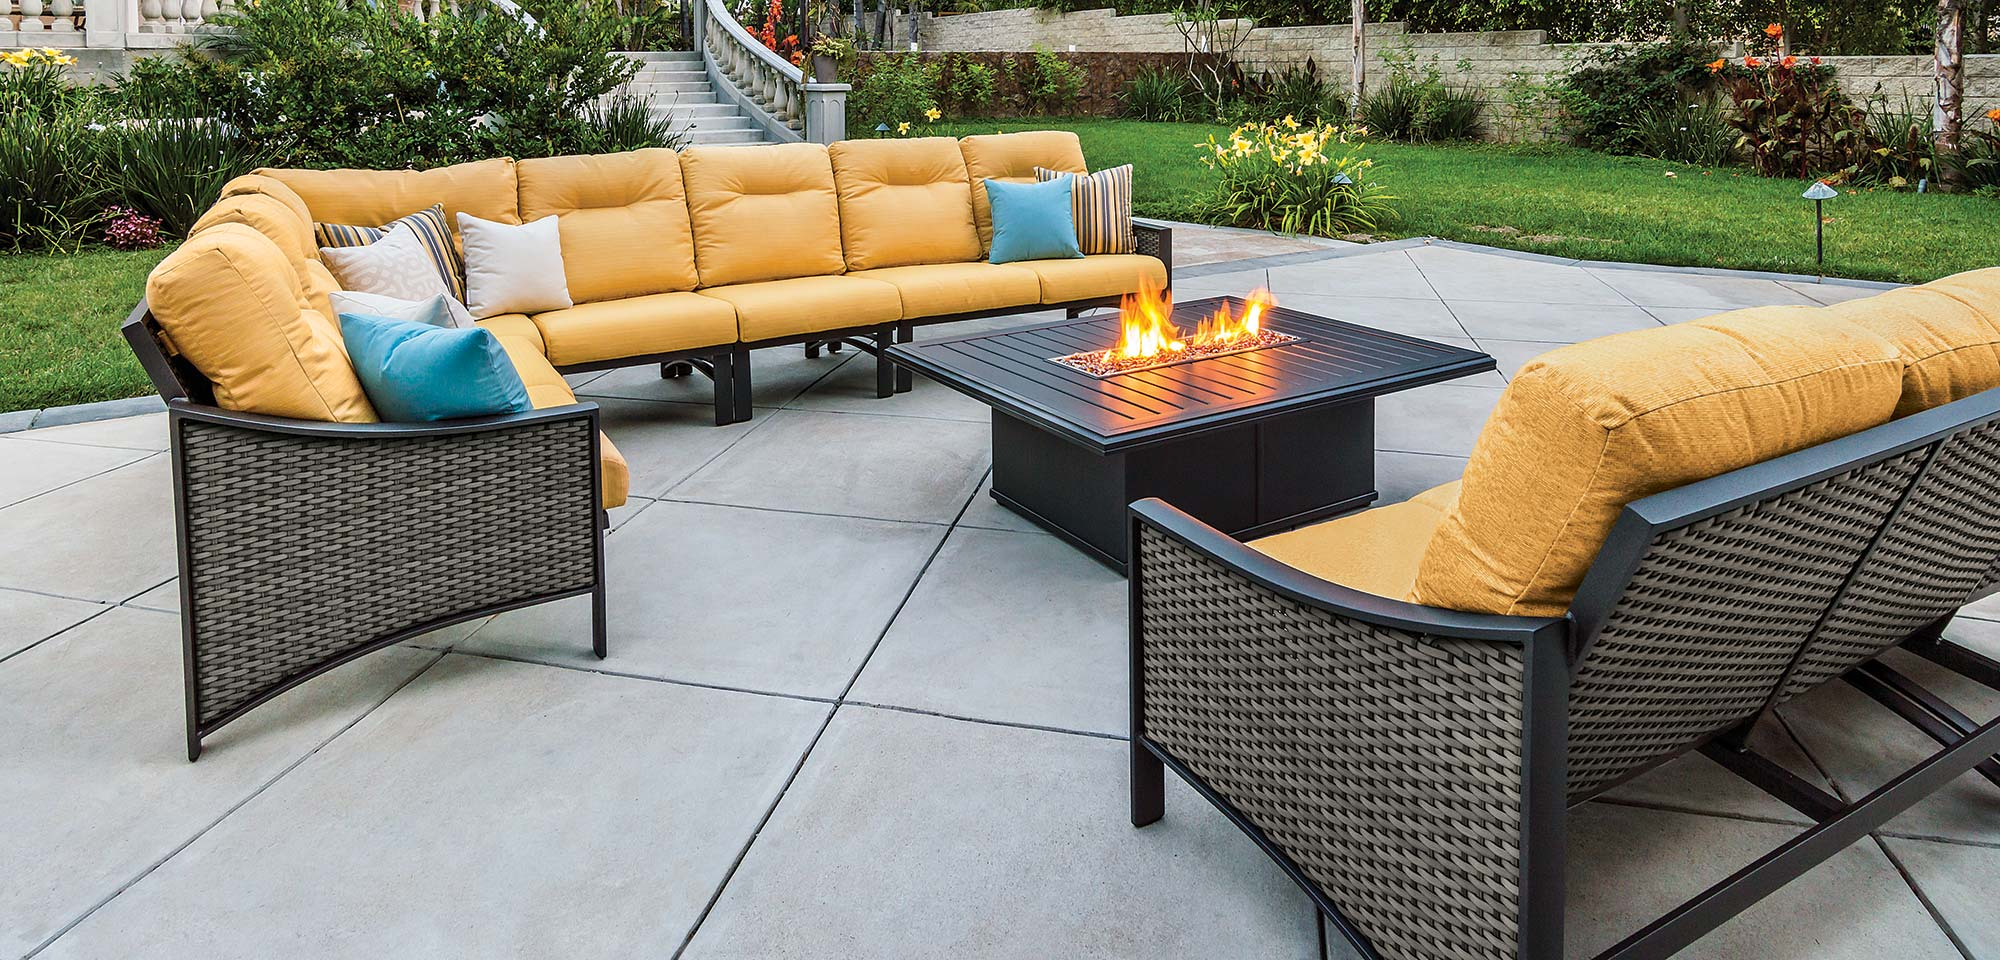 Patio furniture outdoor patio furniture sets for Outdoor garden furniture